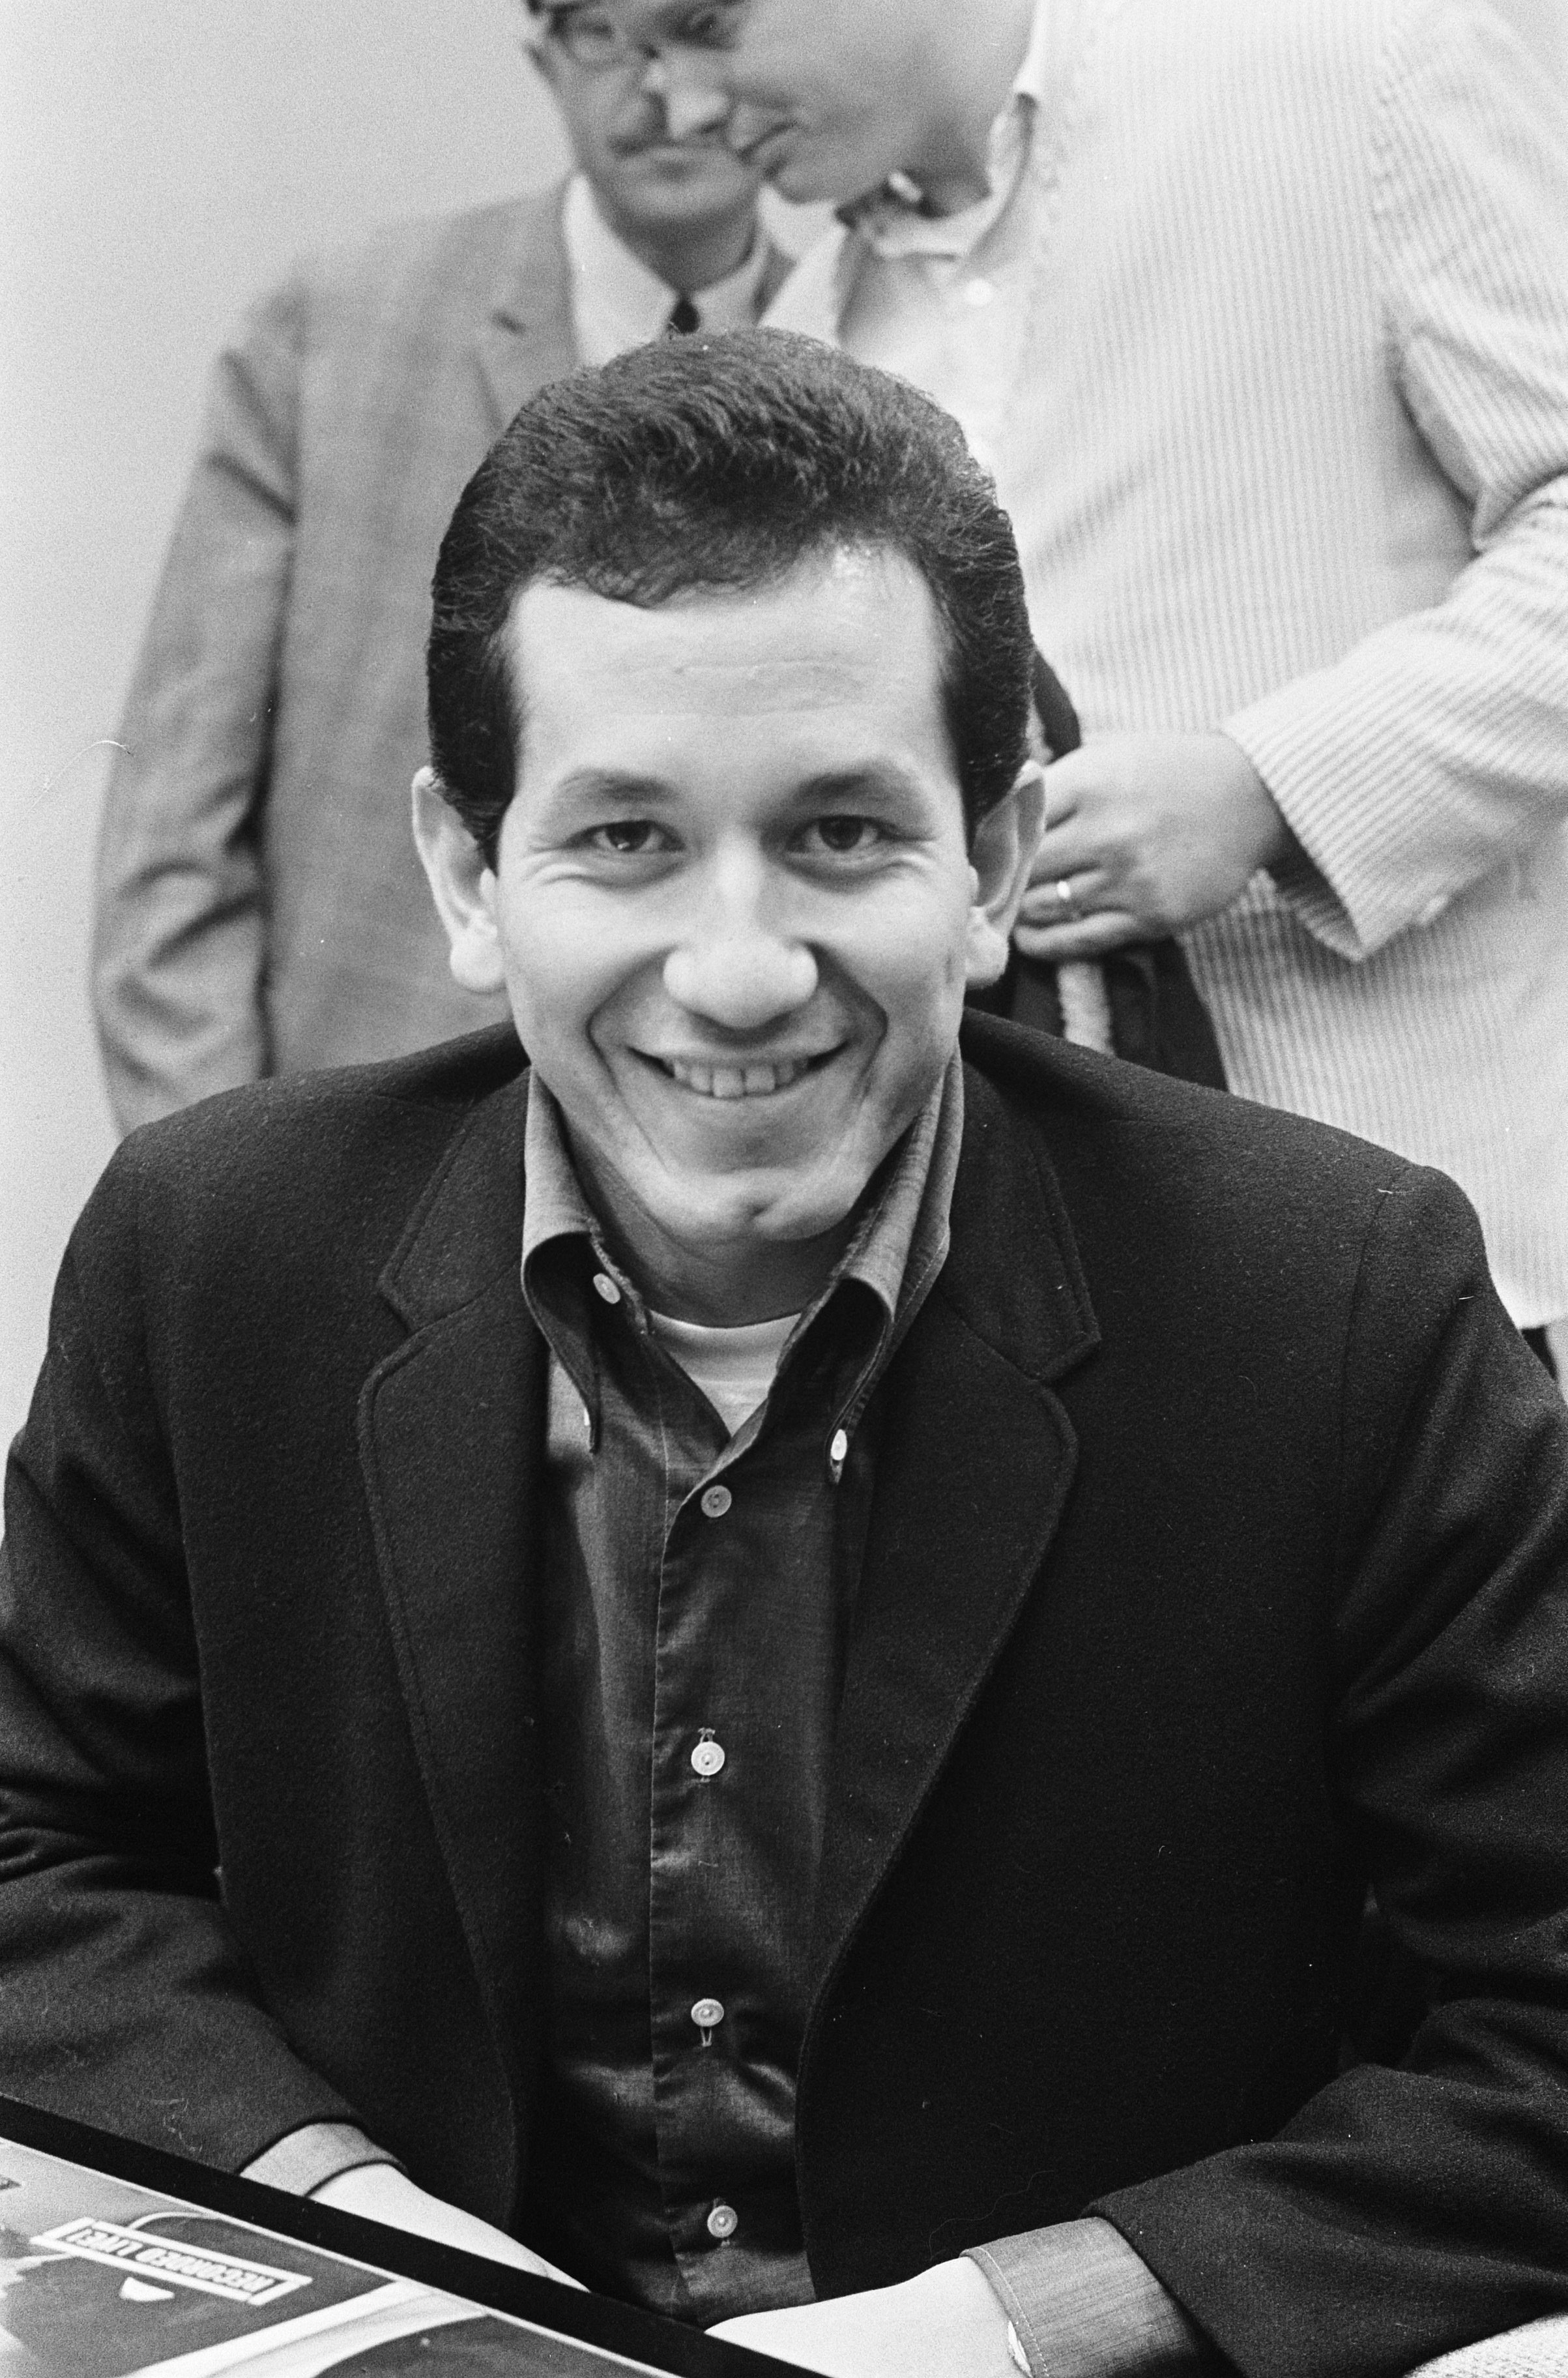 Trini Lopez at Schiphol to attend the Grand Gala du Disque. | Photo: Hugo van Gelderen , creator 915-6212, CC0 BY 1.0, Wikimedia Commons